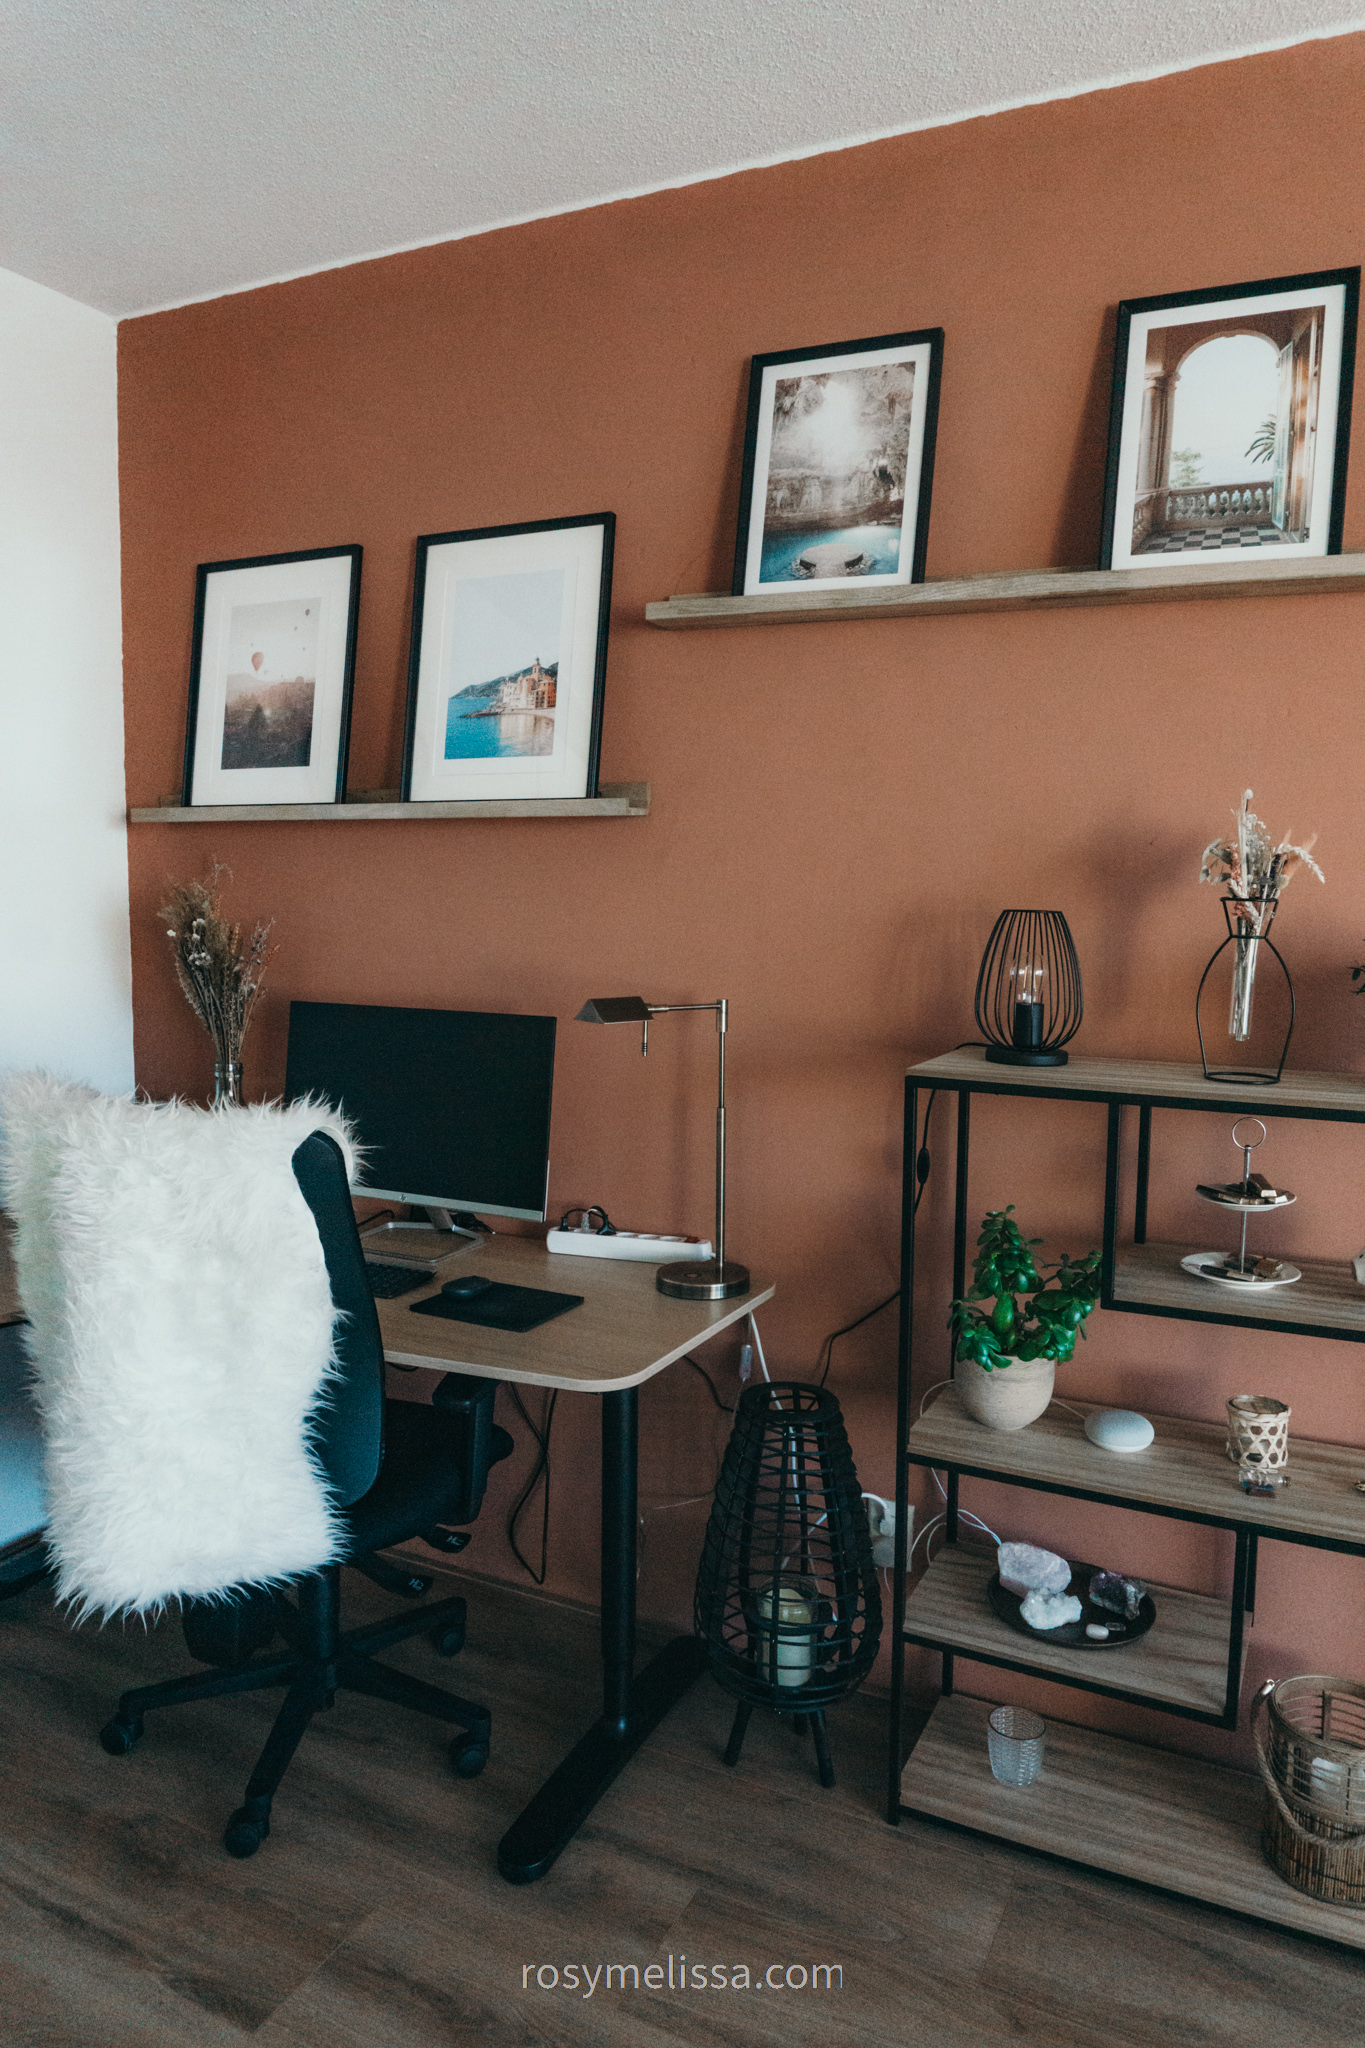 full overview on office, work space area, working from home, productivity corner